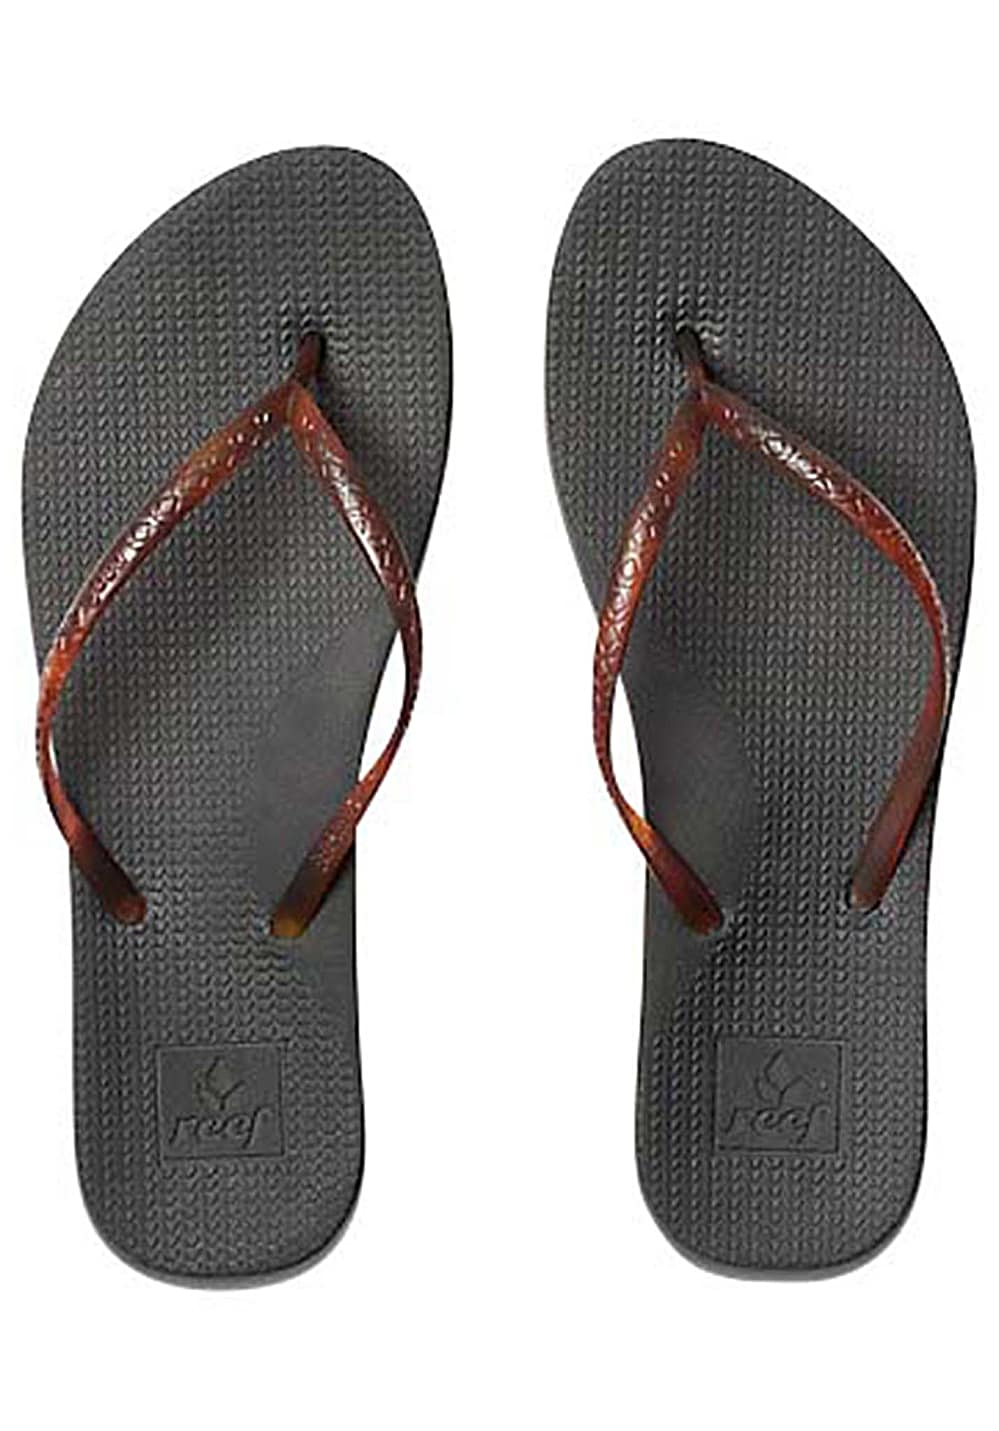 f5b0195f29032 ... Reef Escape Lux Tort - Sandals for Women - Black. Back to Overview. -30%